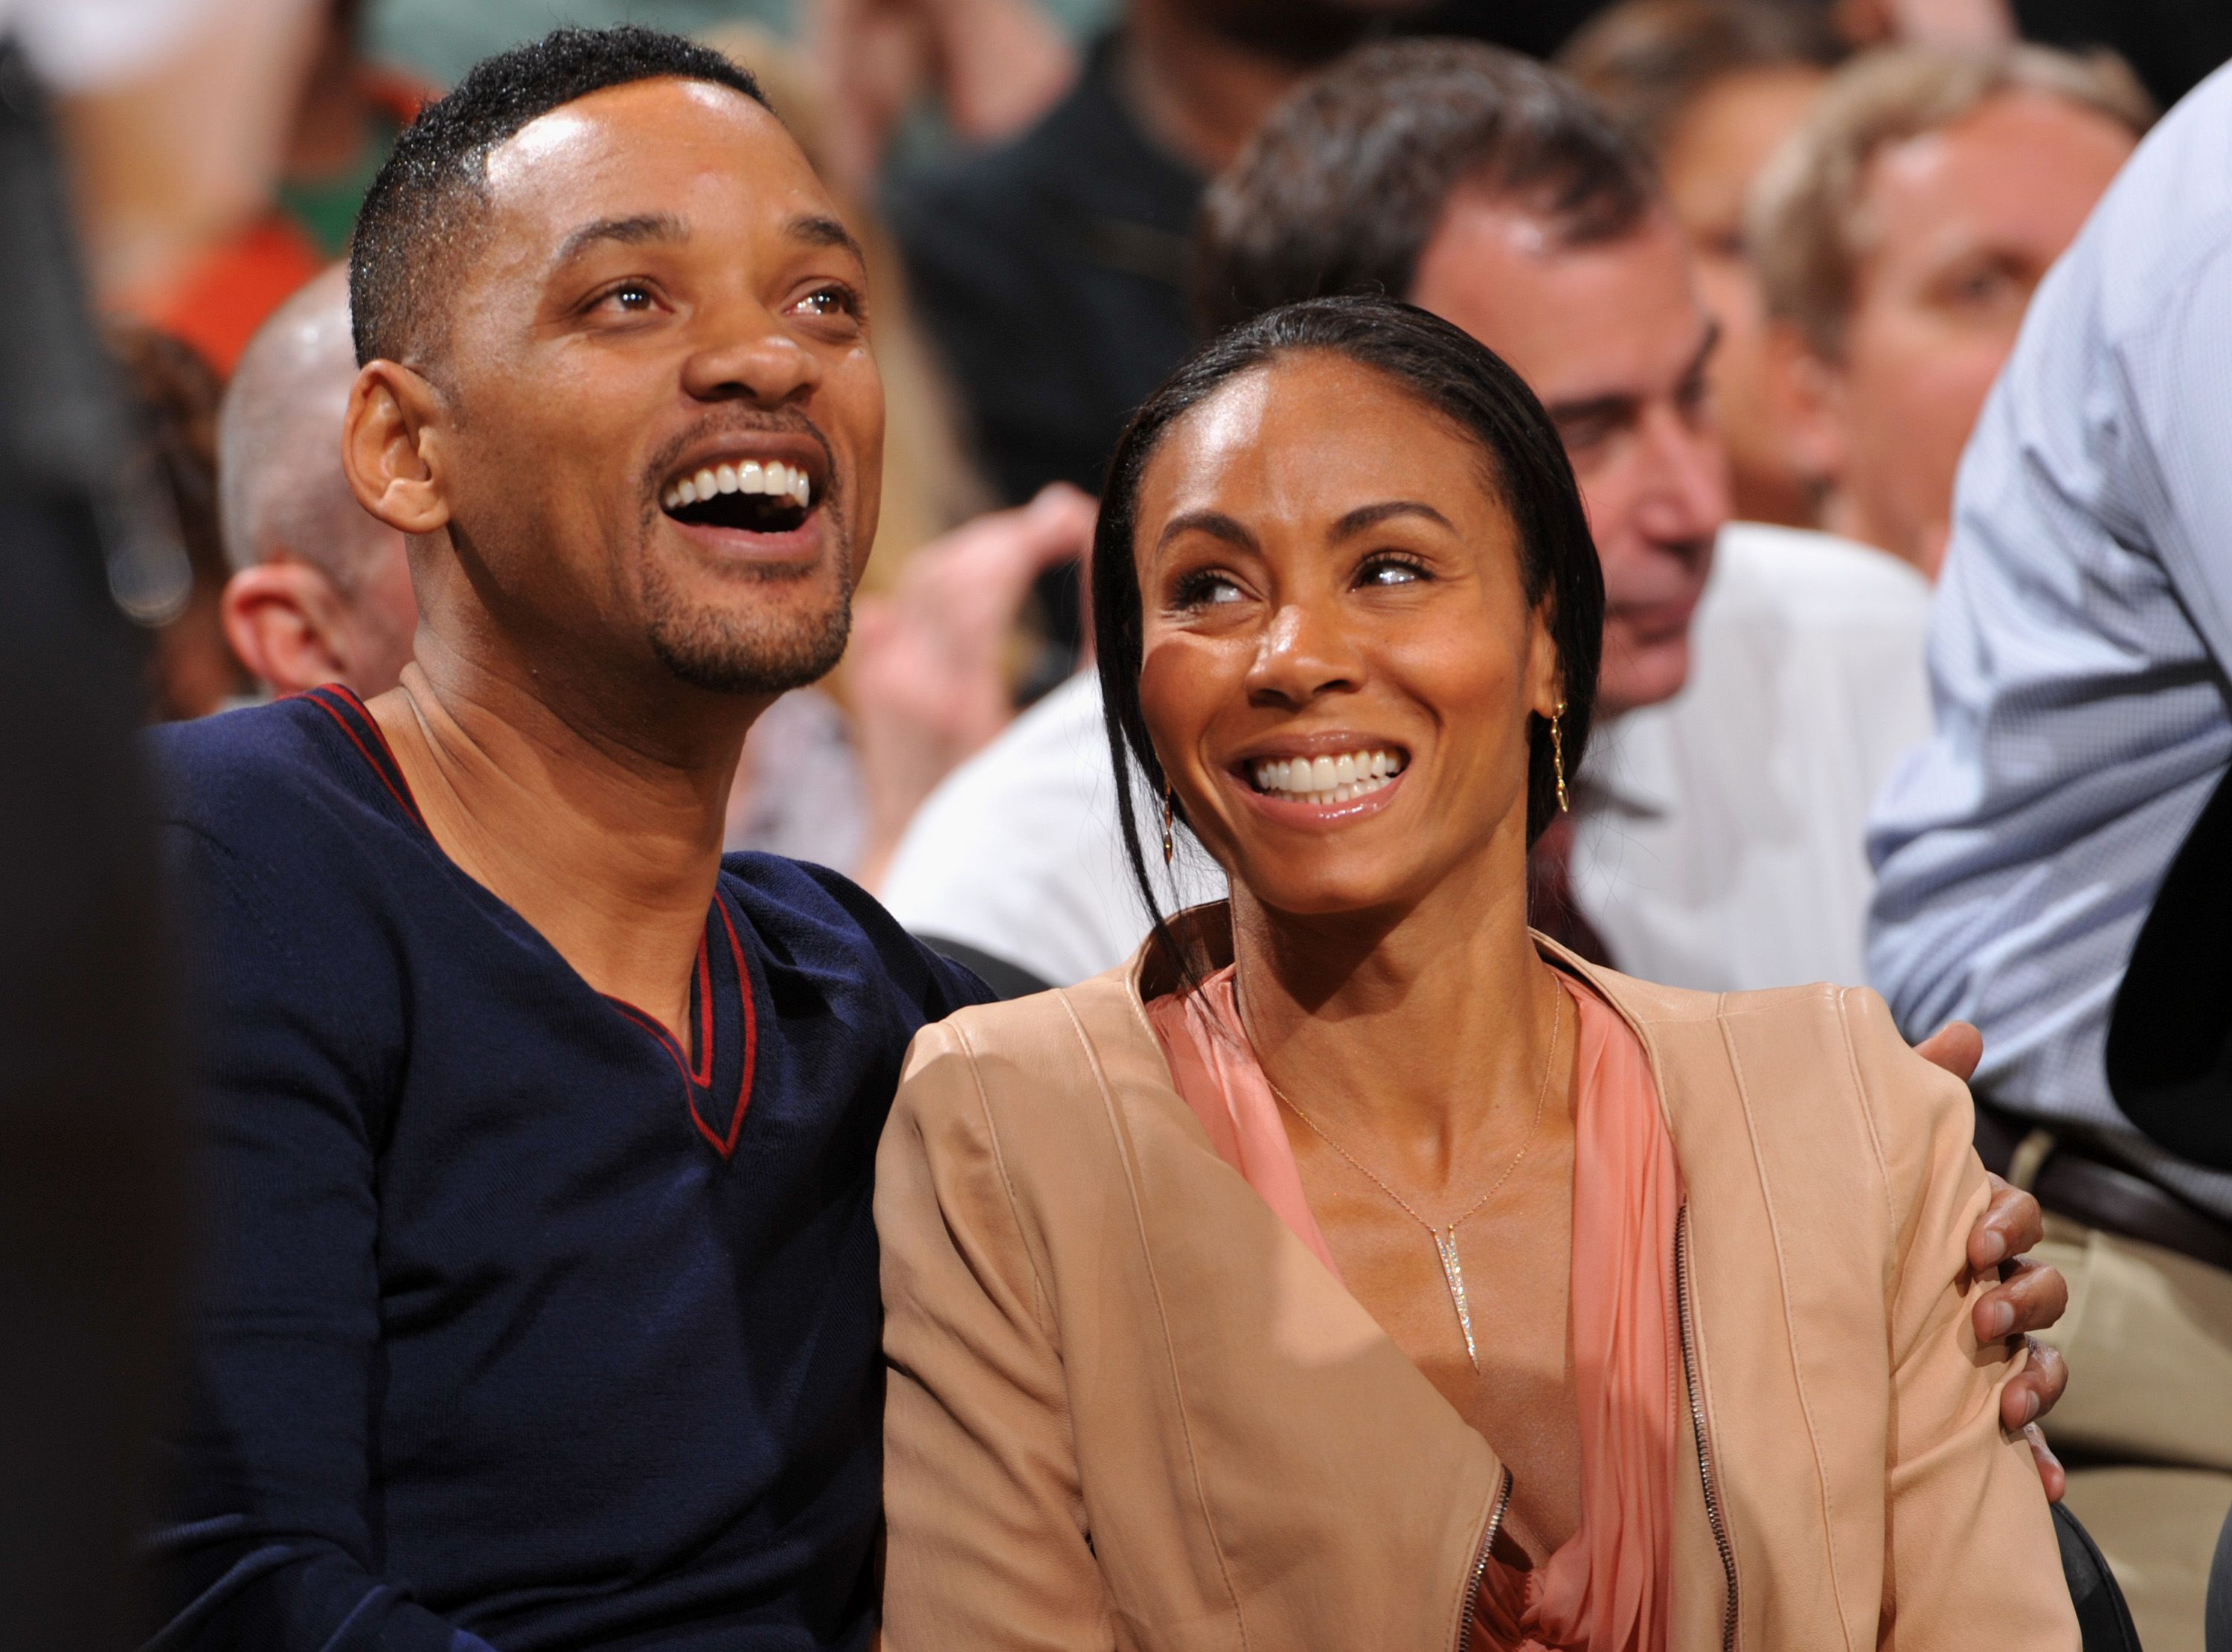 Will Smith and Jada Pinkett watch Game Five of the Eastern Conference Semifinals between the Philadelphia 76ers and Boston Celtics during the 2012 NBA Playoffs on May 21, 2012 at the TD Garden in Boston, Massachusetts. | Source: Getty Images